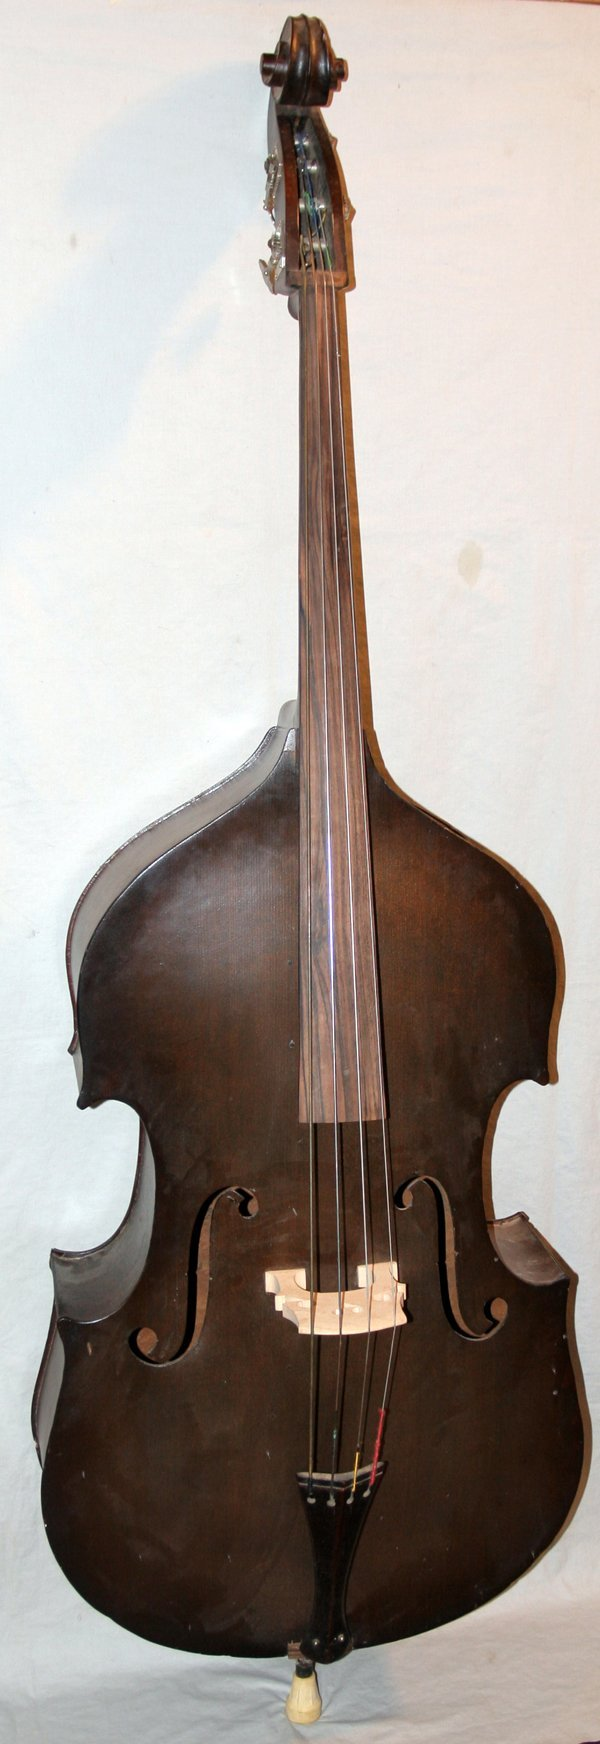 082186: GIBSON VINTAGE DOUBLE BASS, H 6'